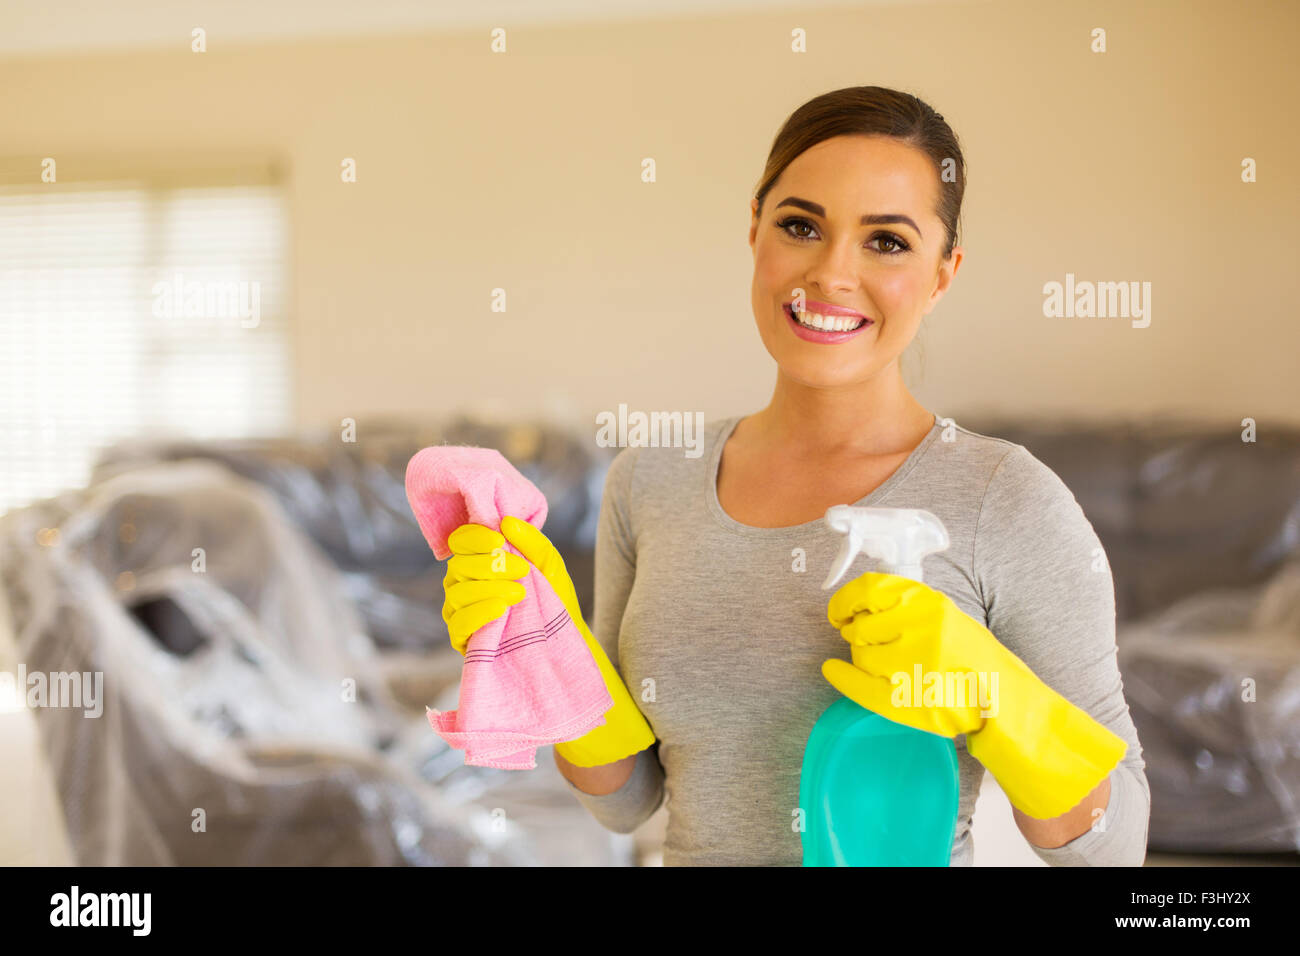 beautiful housewife doing housework in new home - Stock Image